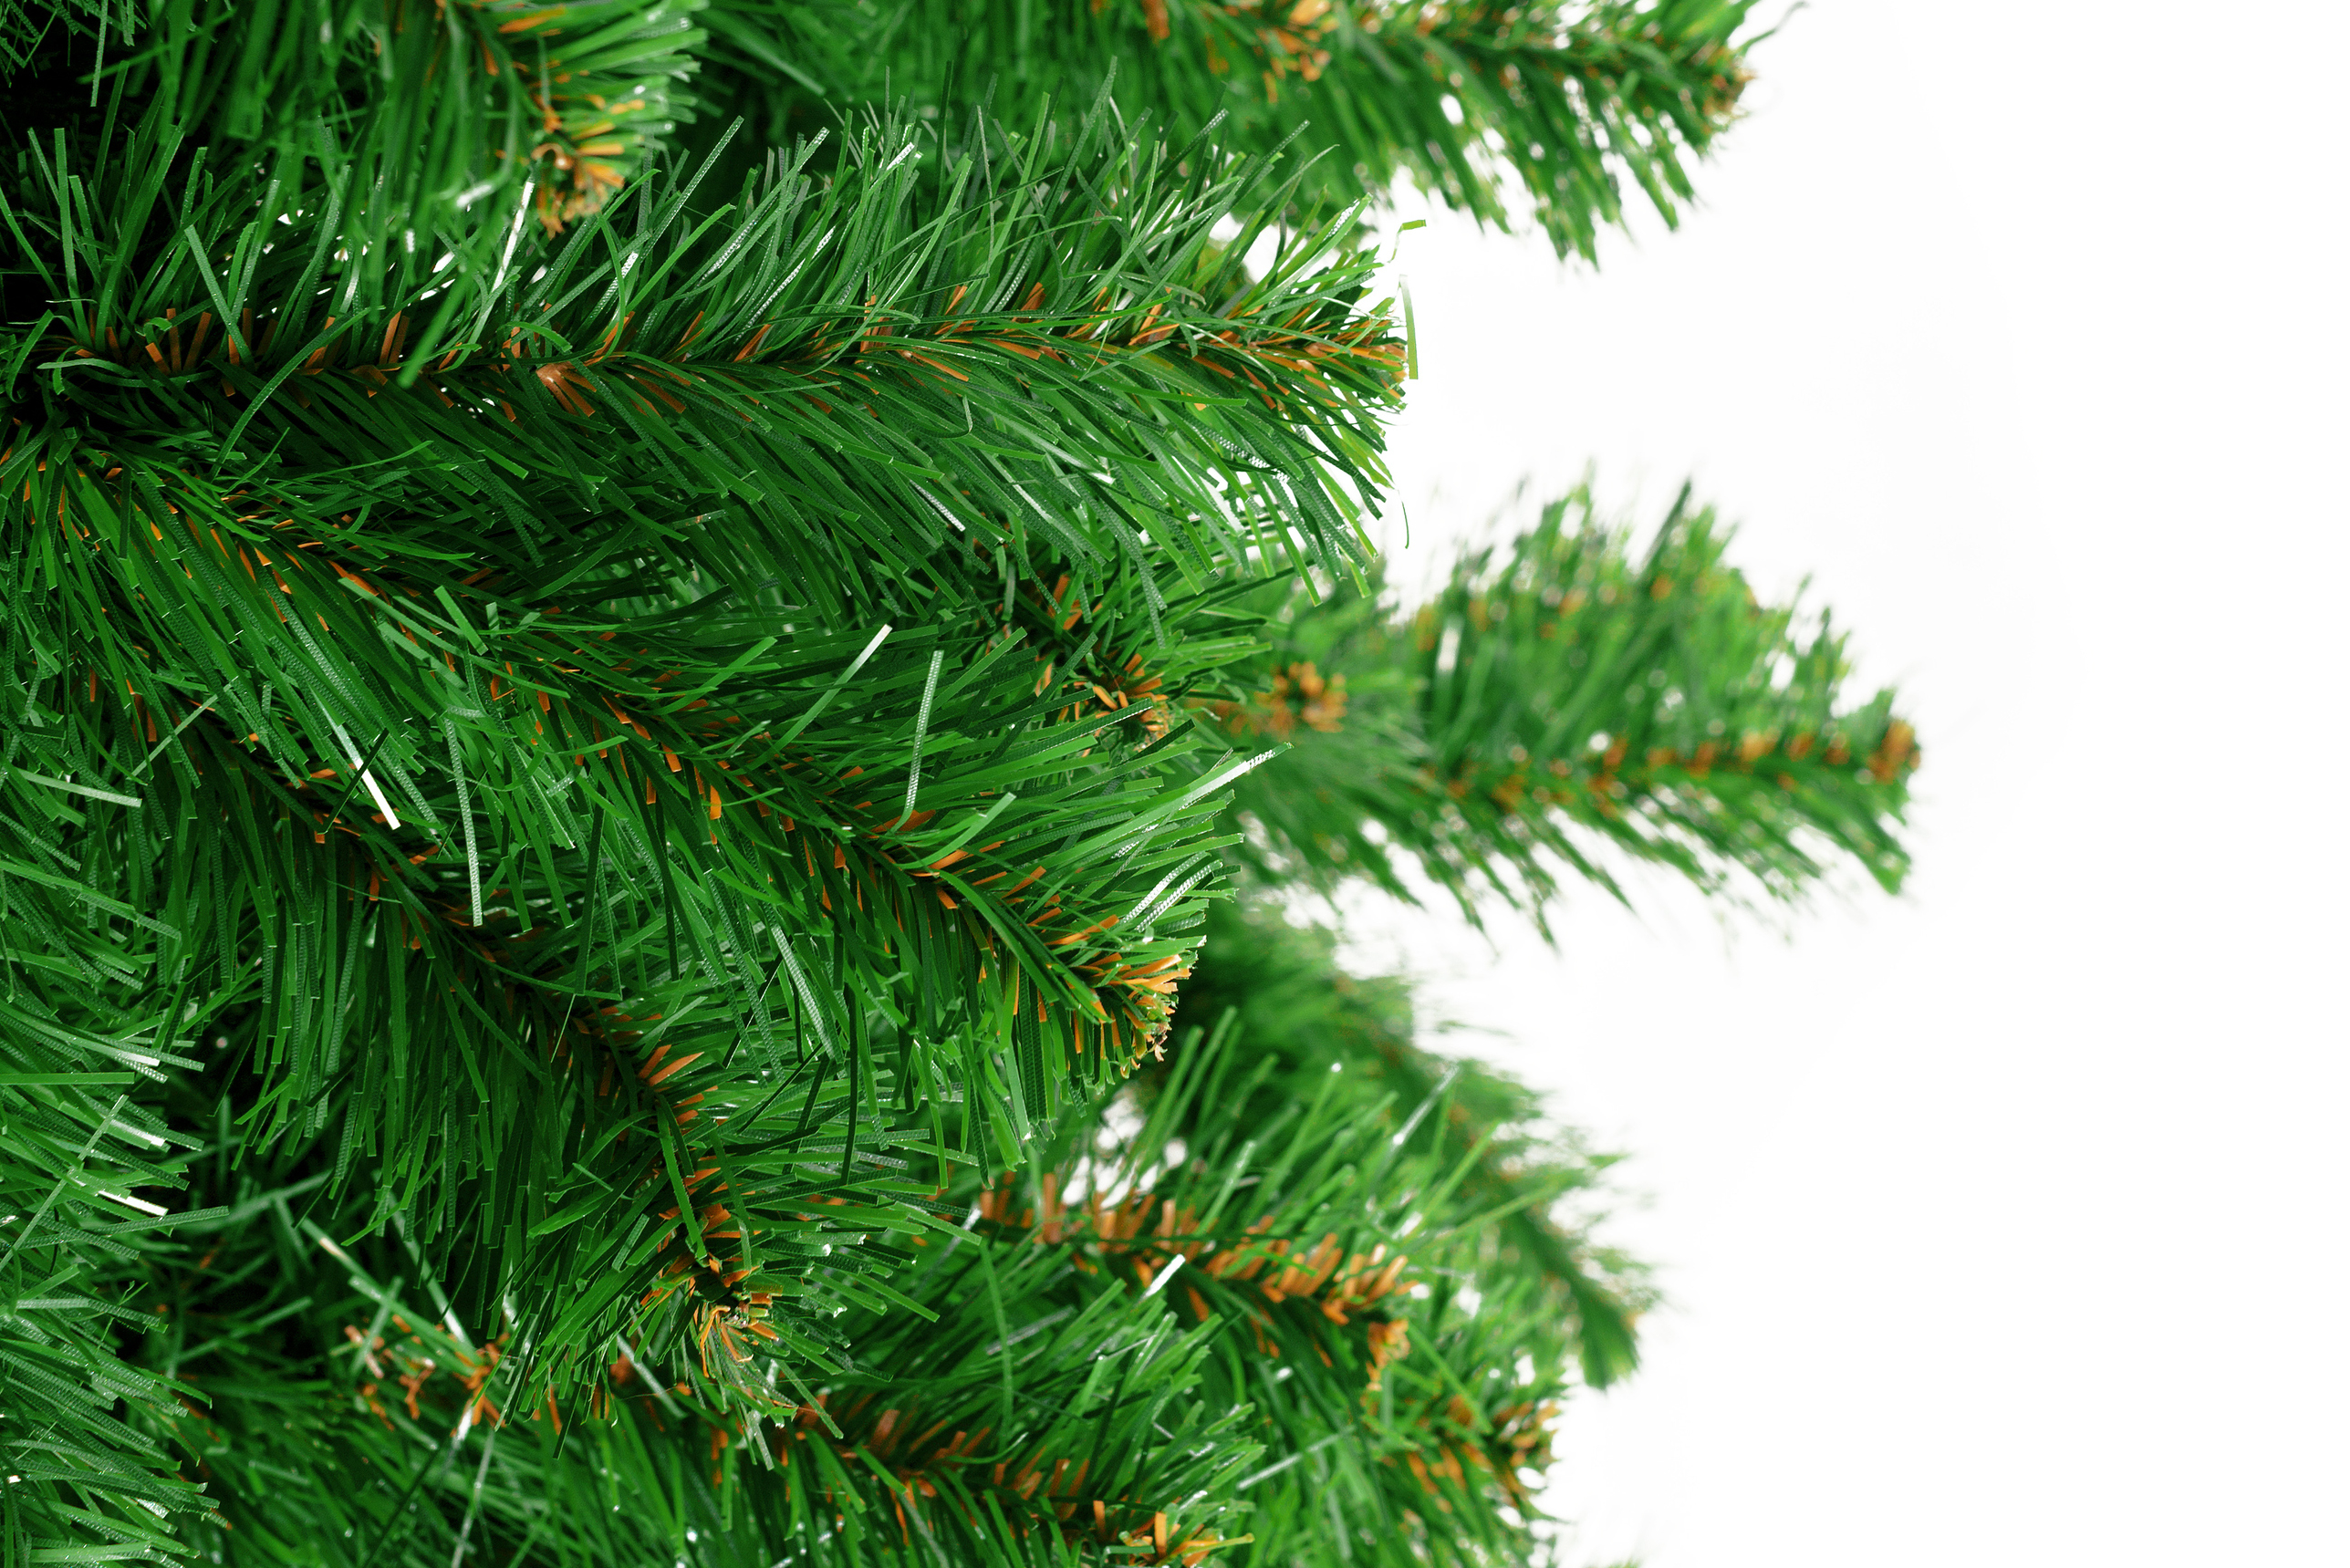 Artificial Christmas Tree ISTOCK